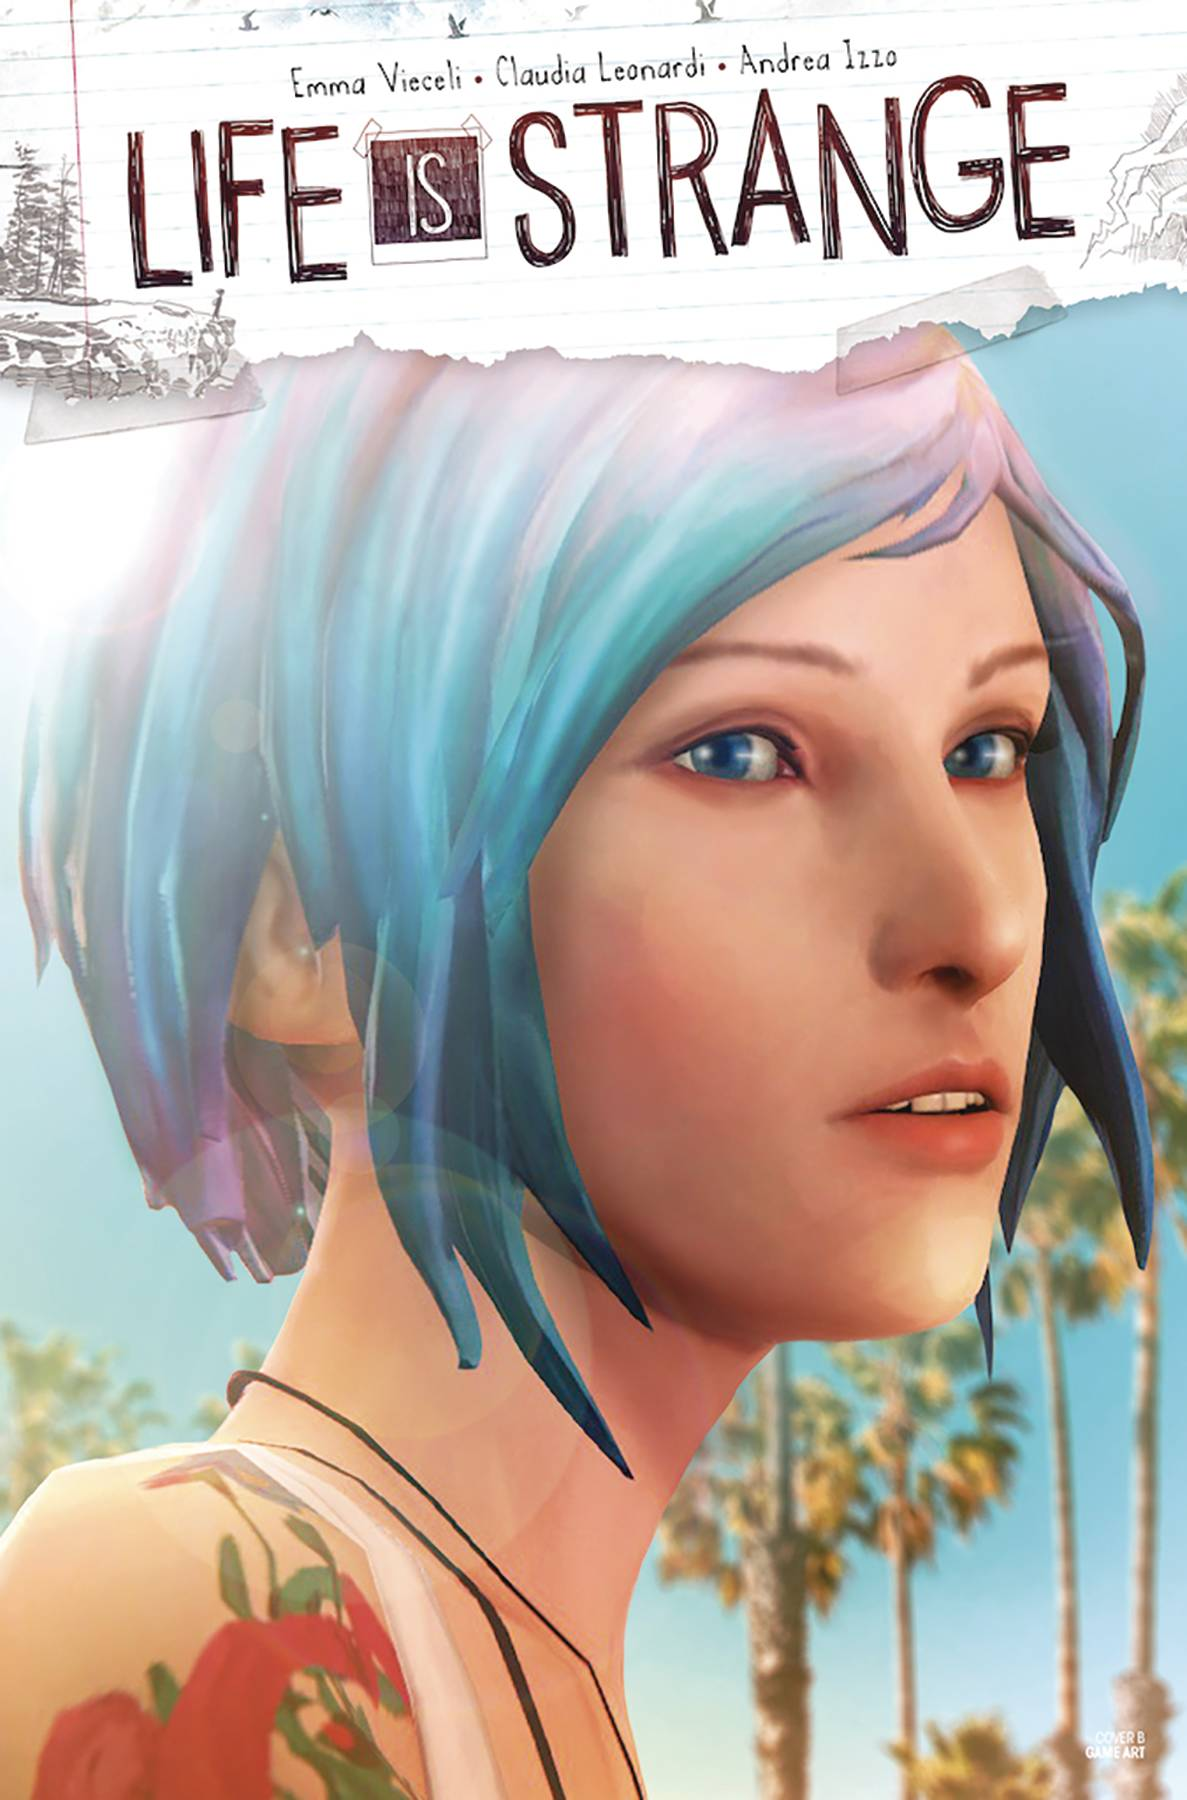 LIFE IS STRANGE 6 CVR B GAME ART.jpg